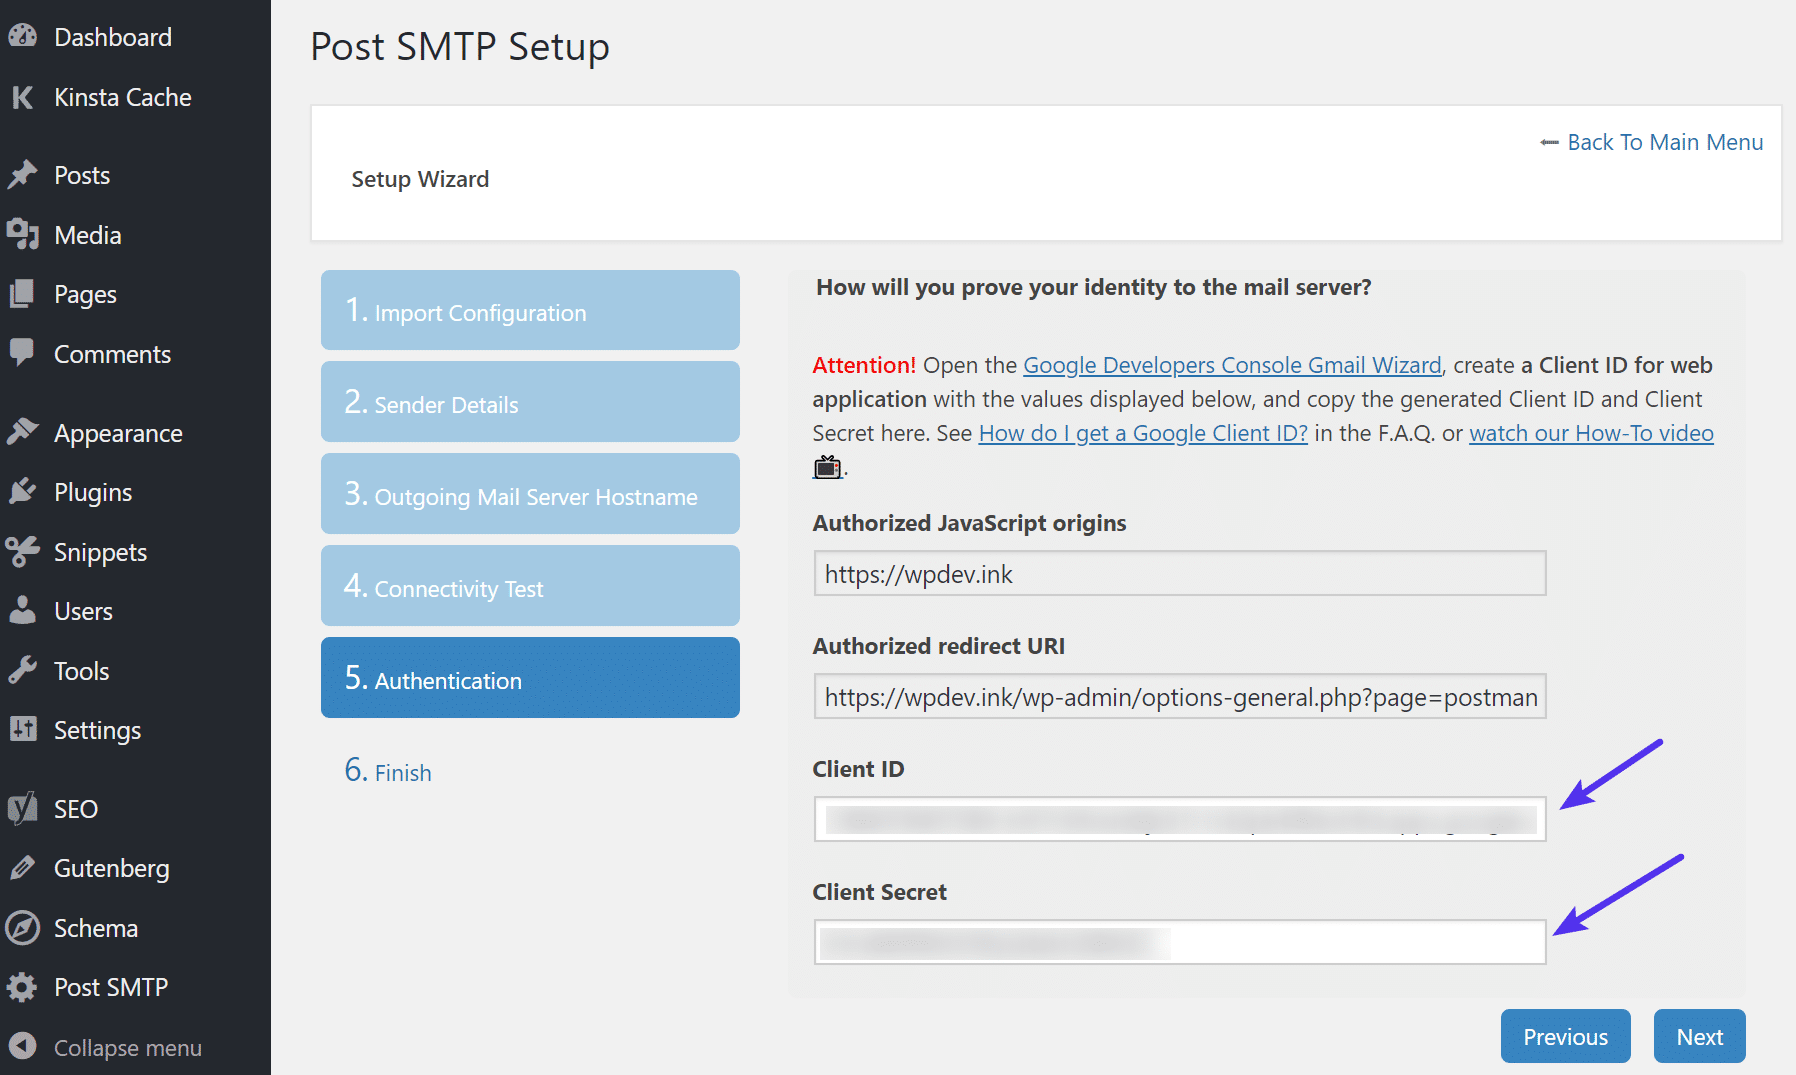 Authentification de Post SMTP